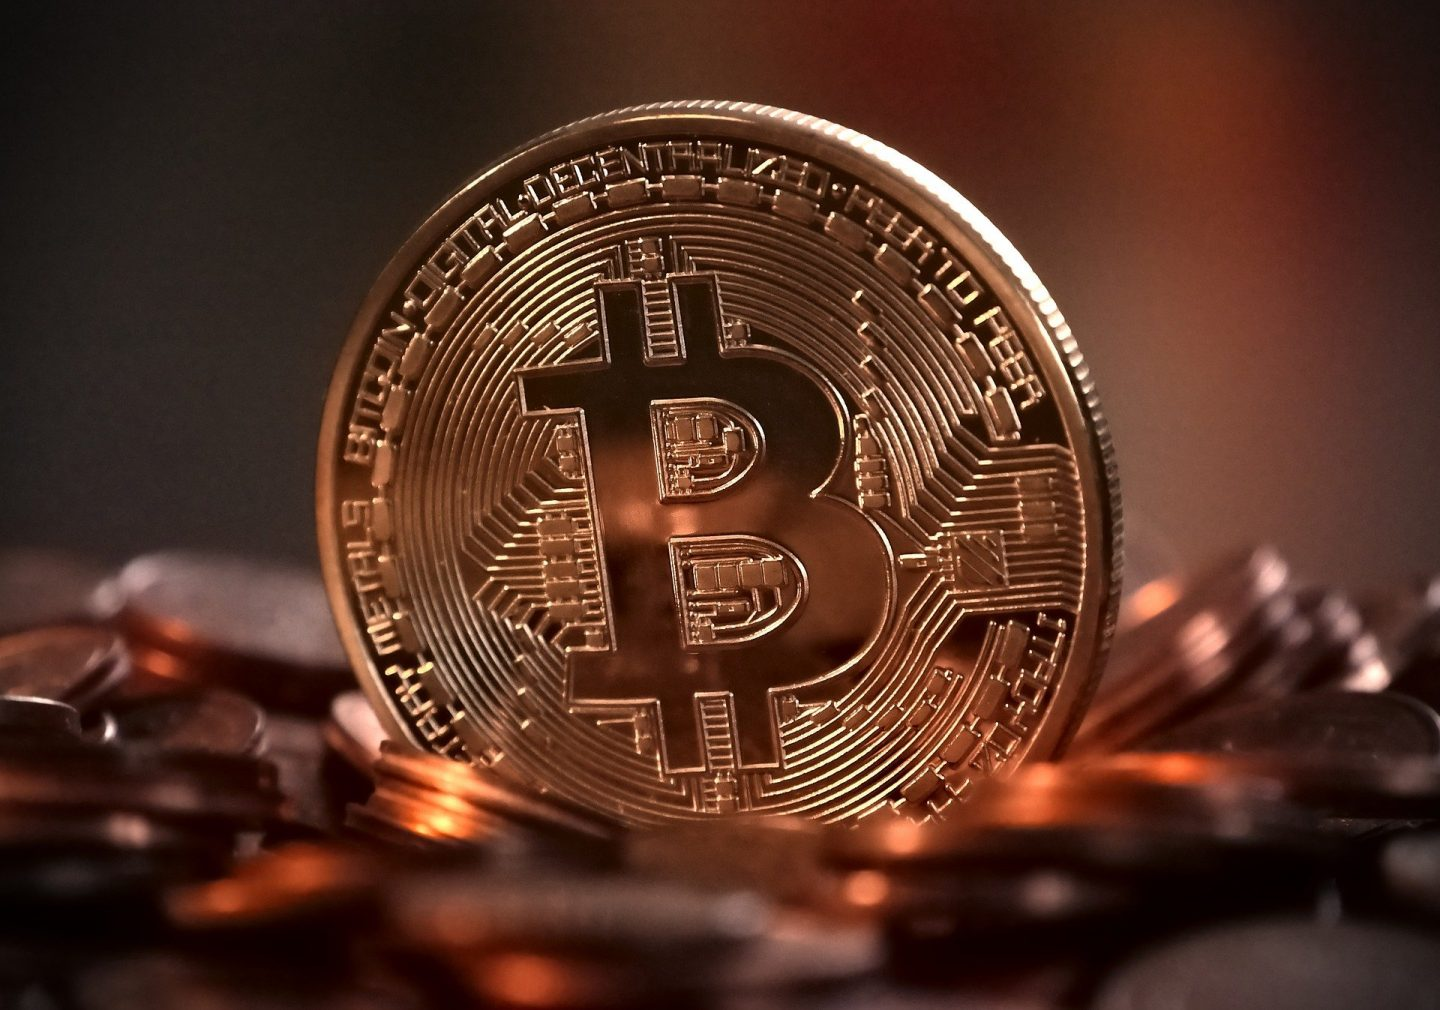 ERIC DALIUS BITCOIN TELLS YOU HOW TO PARTAKE IN BITCOIN TREND